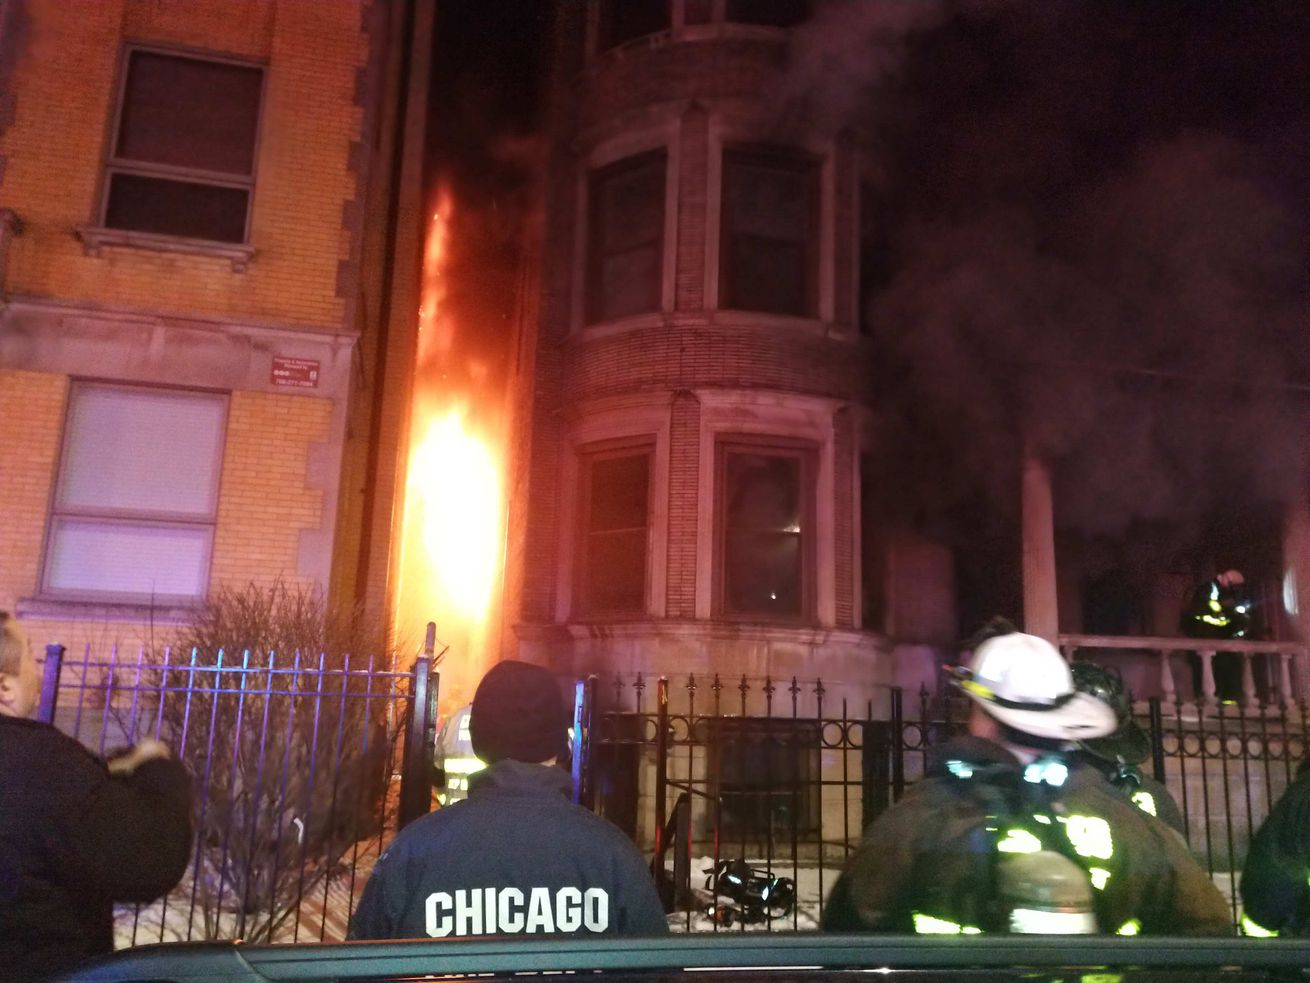 Crews are on the scene for a fire that hurt five people Feb. 15, 2020 in Bronzeville.